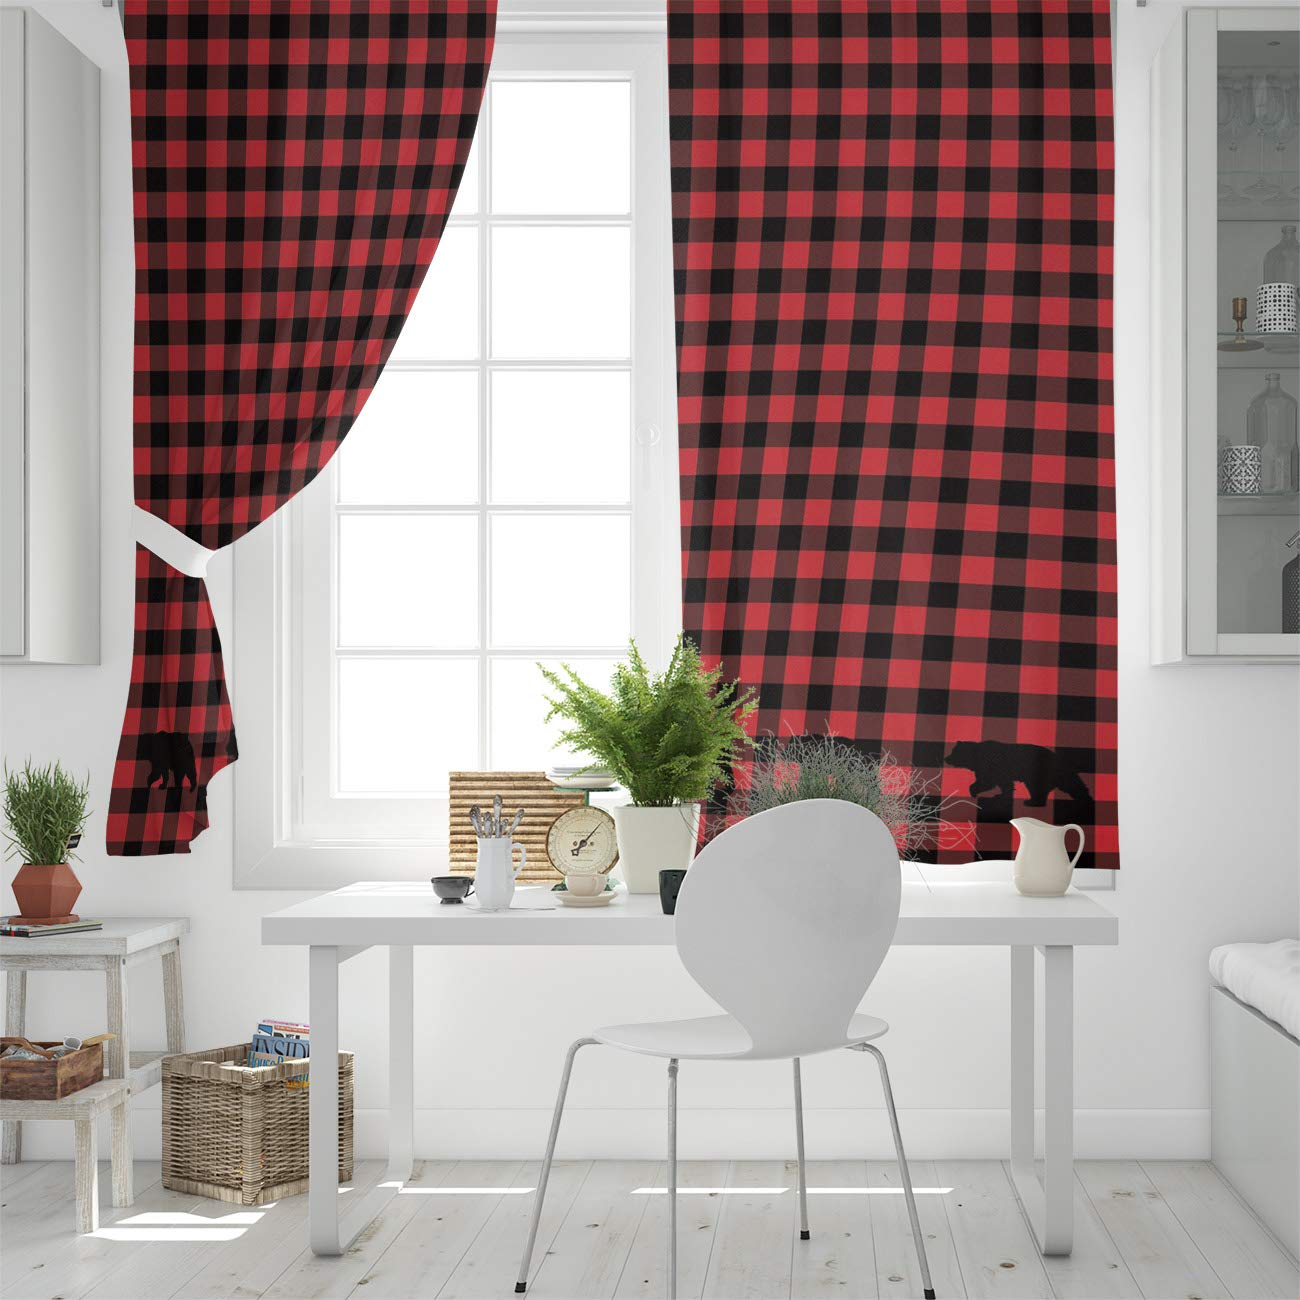 SODIKA Grommet Window Panel Curtain Set Room D/écor Curtain Drapes for Living Room Dining Bedroom Buffalo Check Plaid Bear Applique,Each 27.5 by 39 Inch,Set of Two Panels